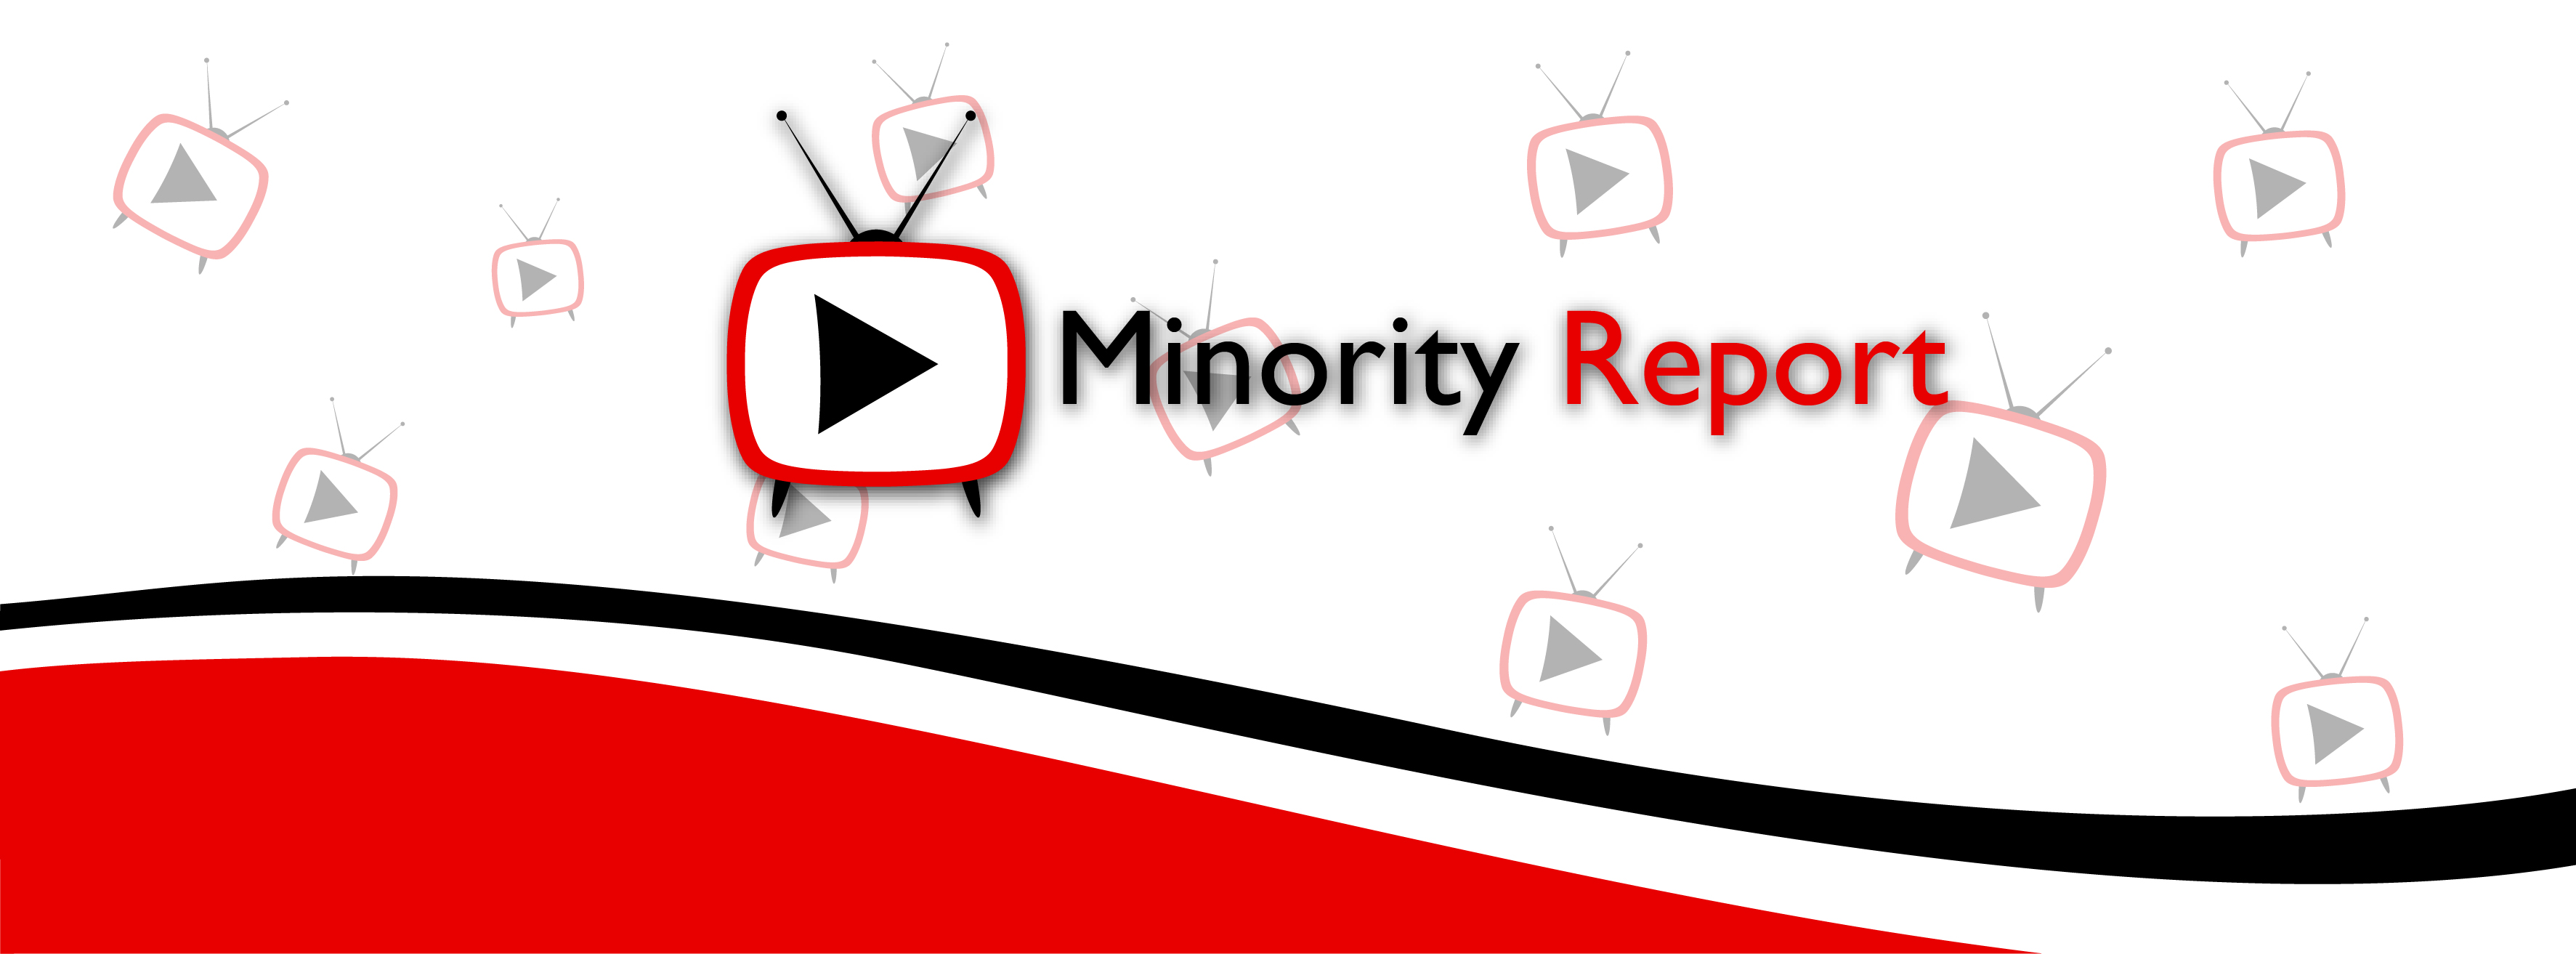 Find Minority Report on FB